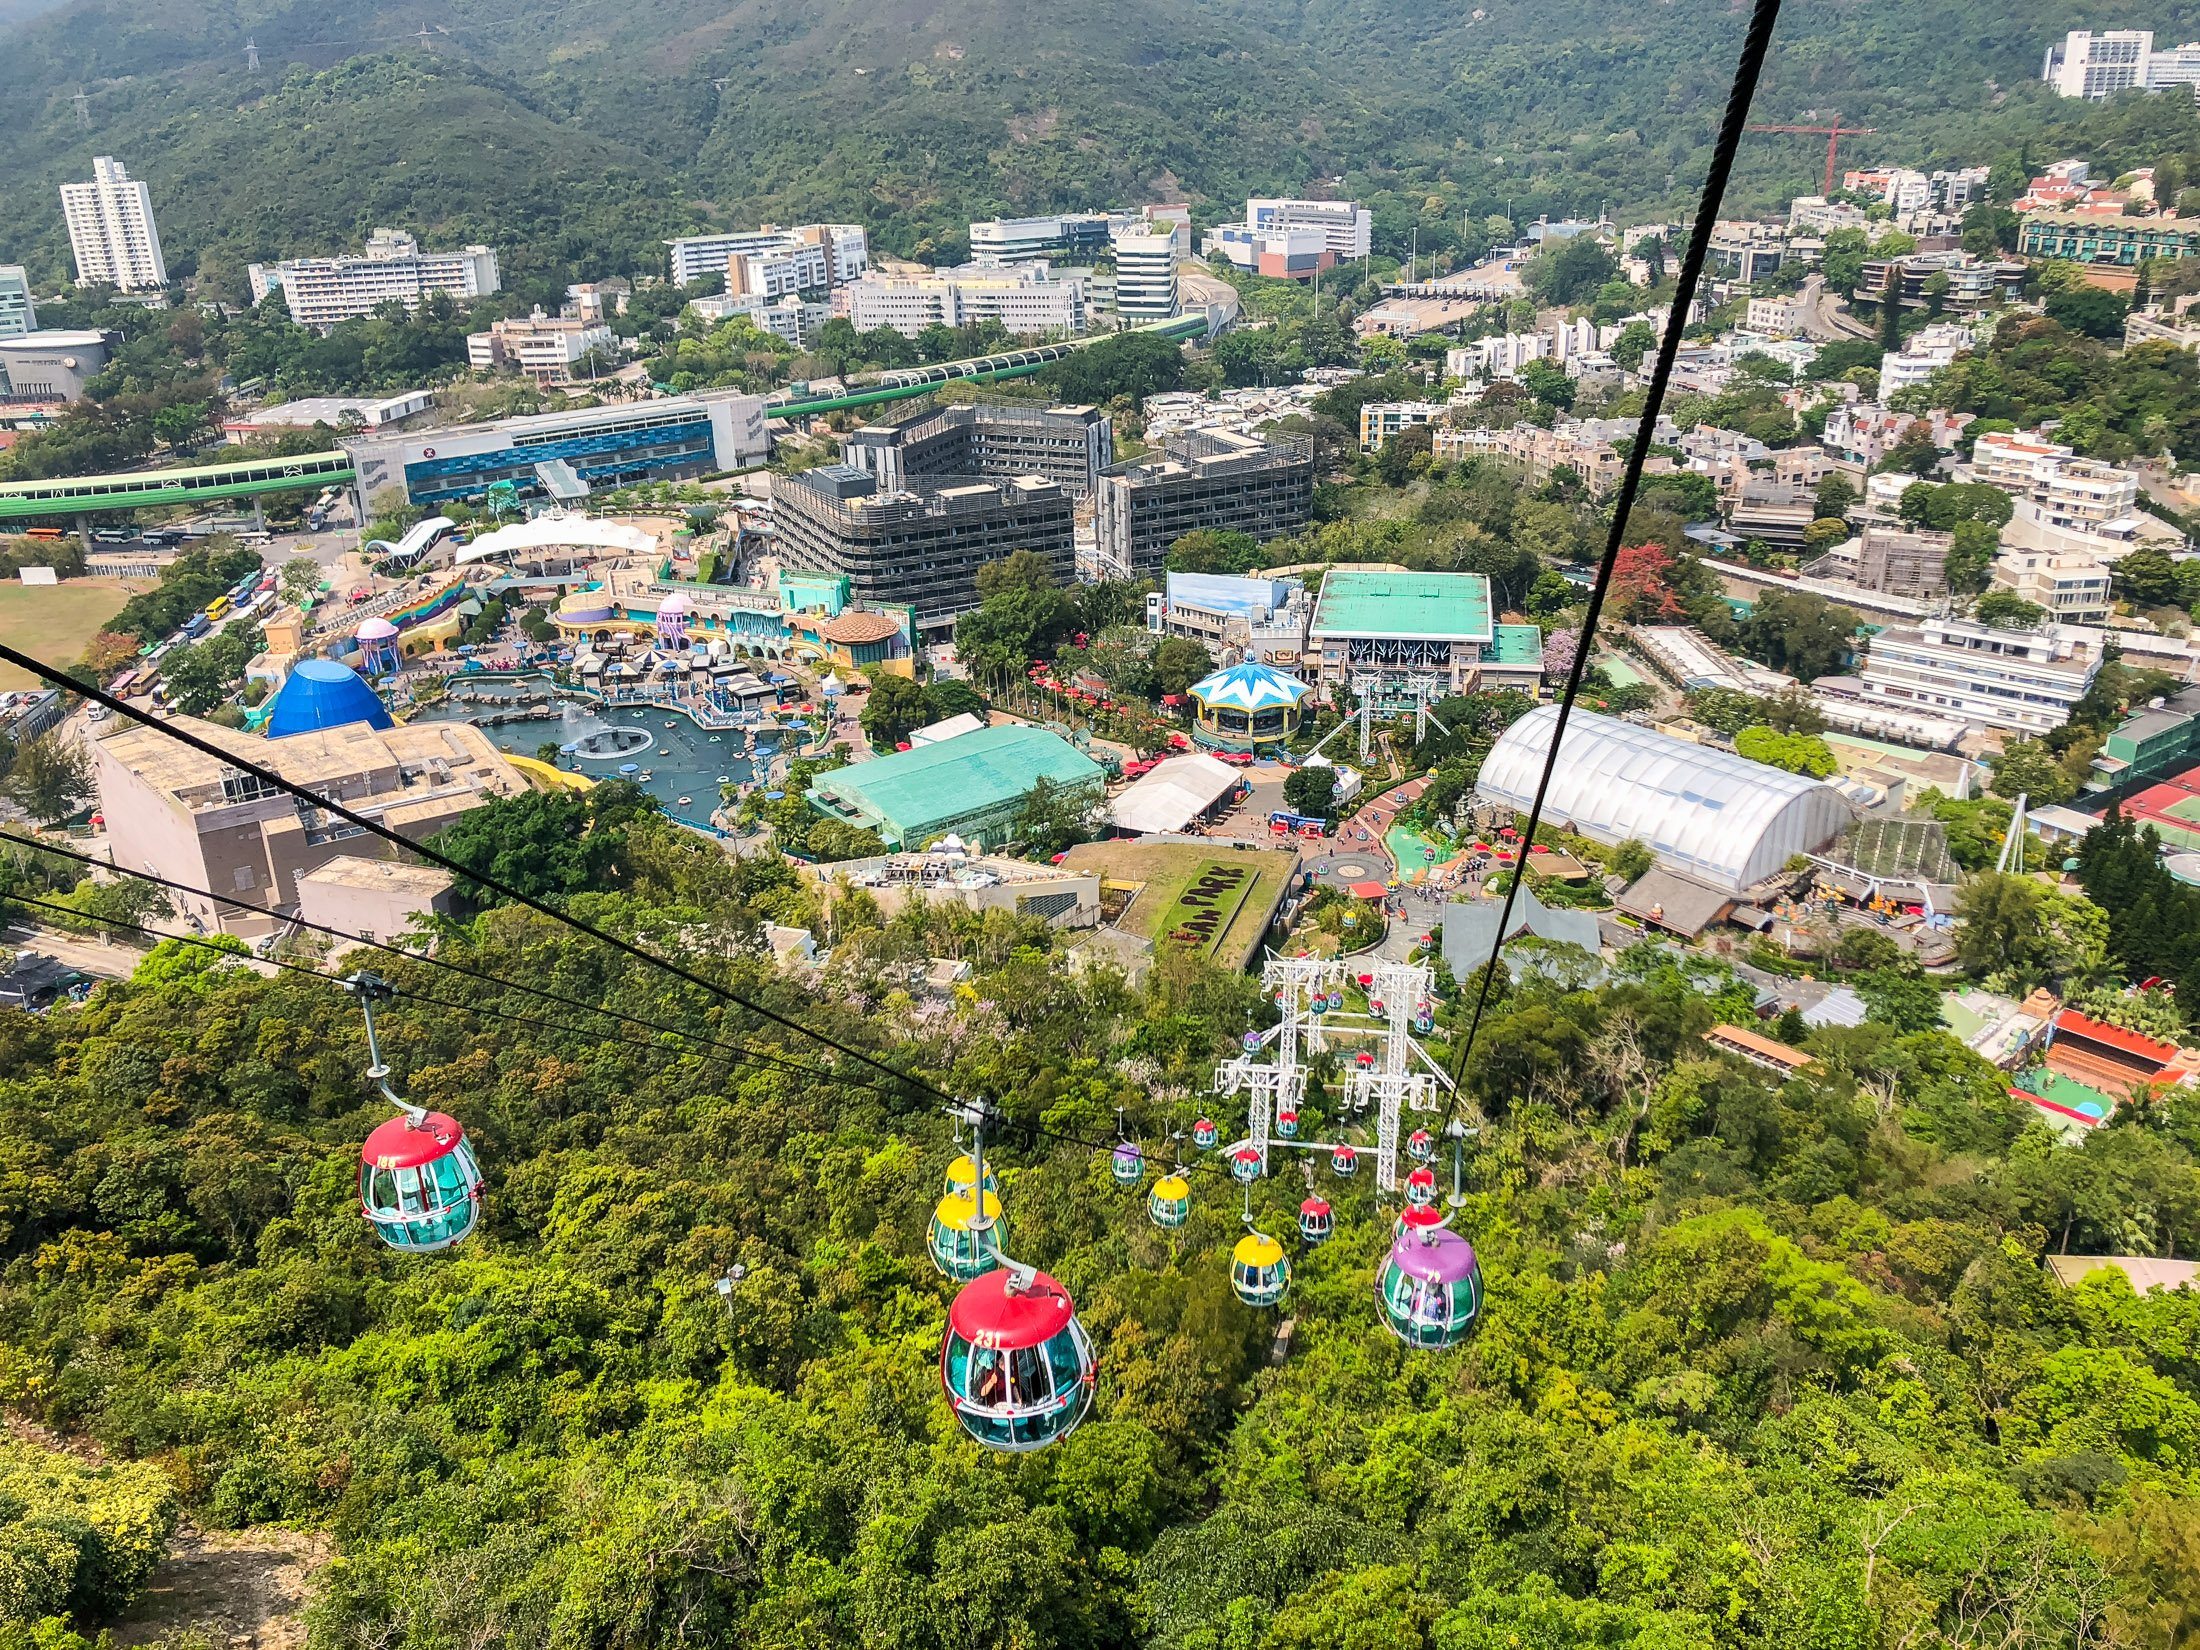 View of The Waterfront from the Ocean Park Hong Kong cable car.